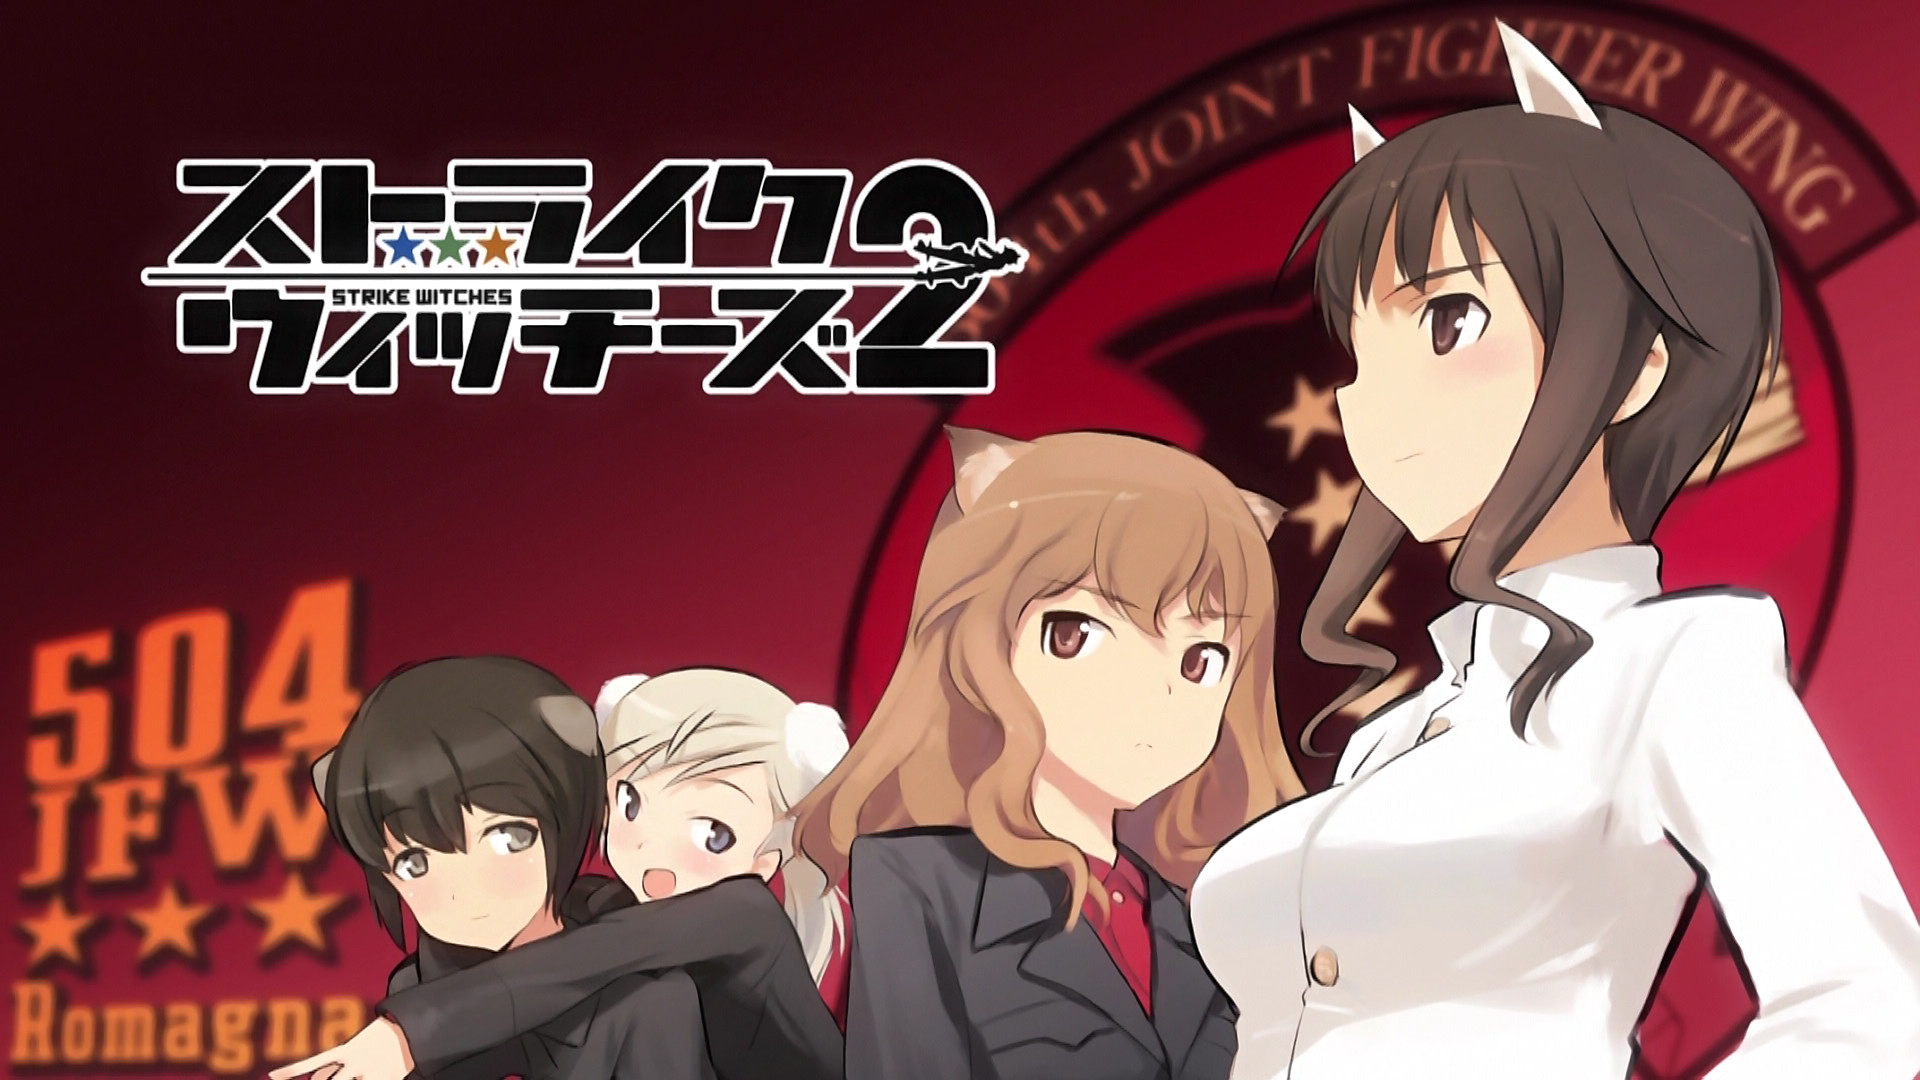 1920x1080 View Fullsize Strike Witches Image